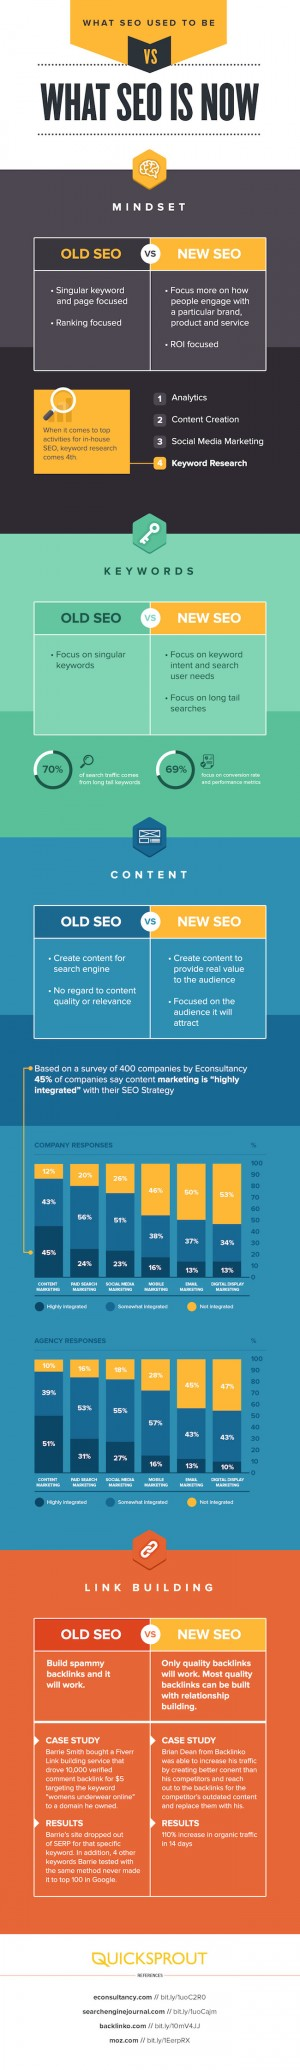 The Evolution of SEO [Infographic]